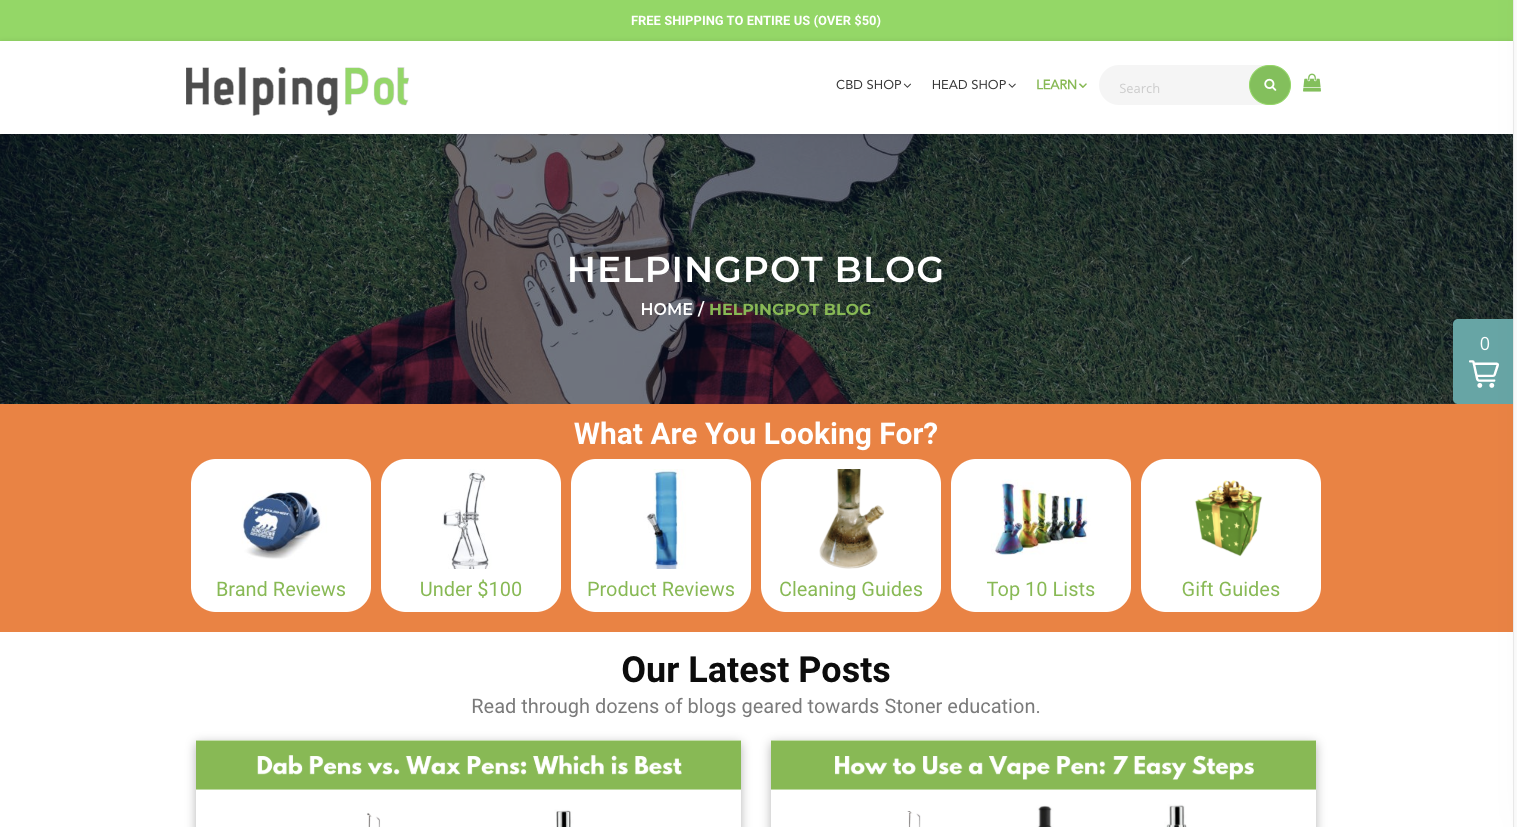 Helpingpot Blog